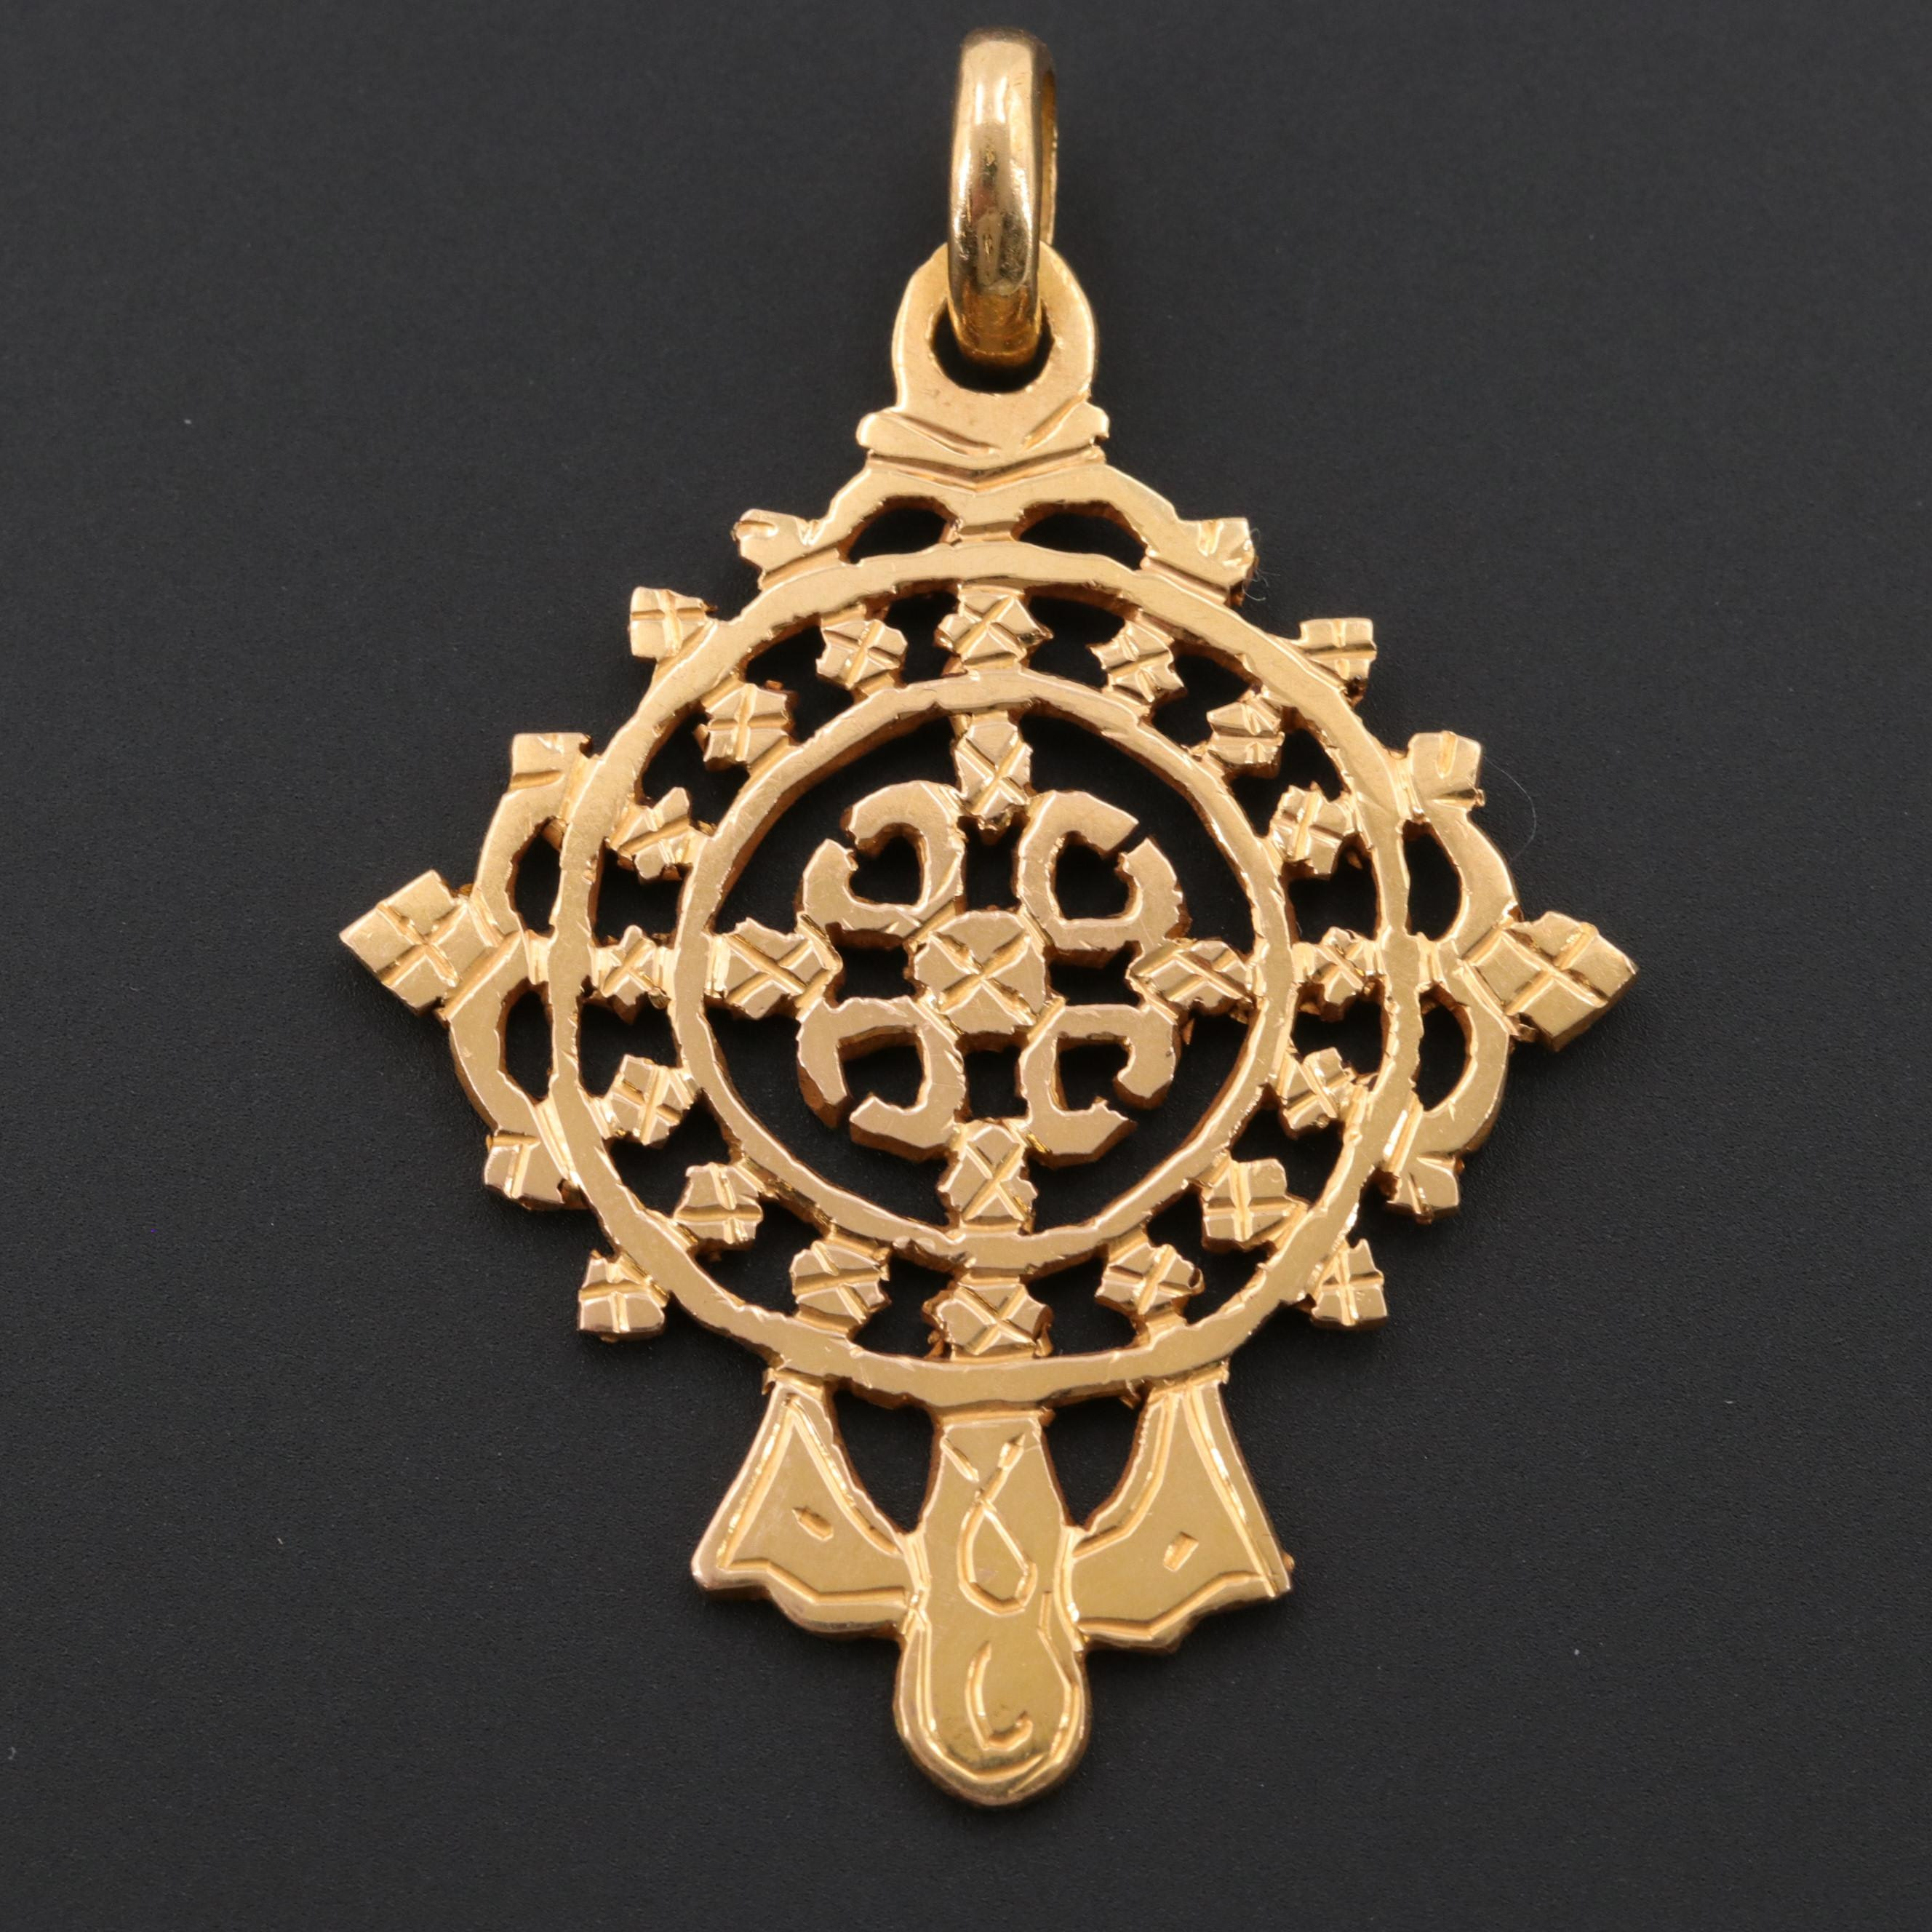 18K Yellow Gold Openwork and Engraved Pendant